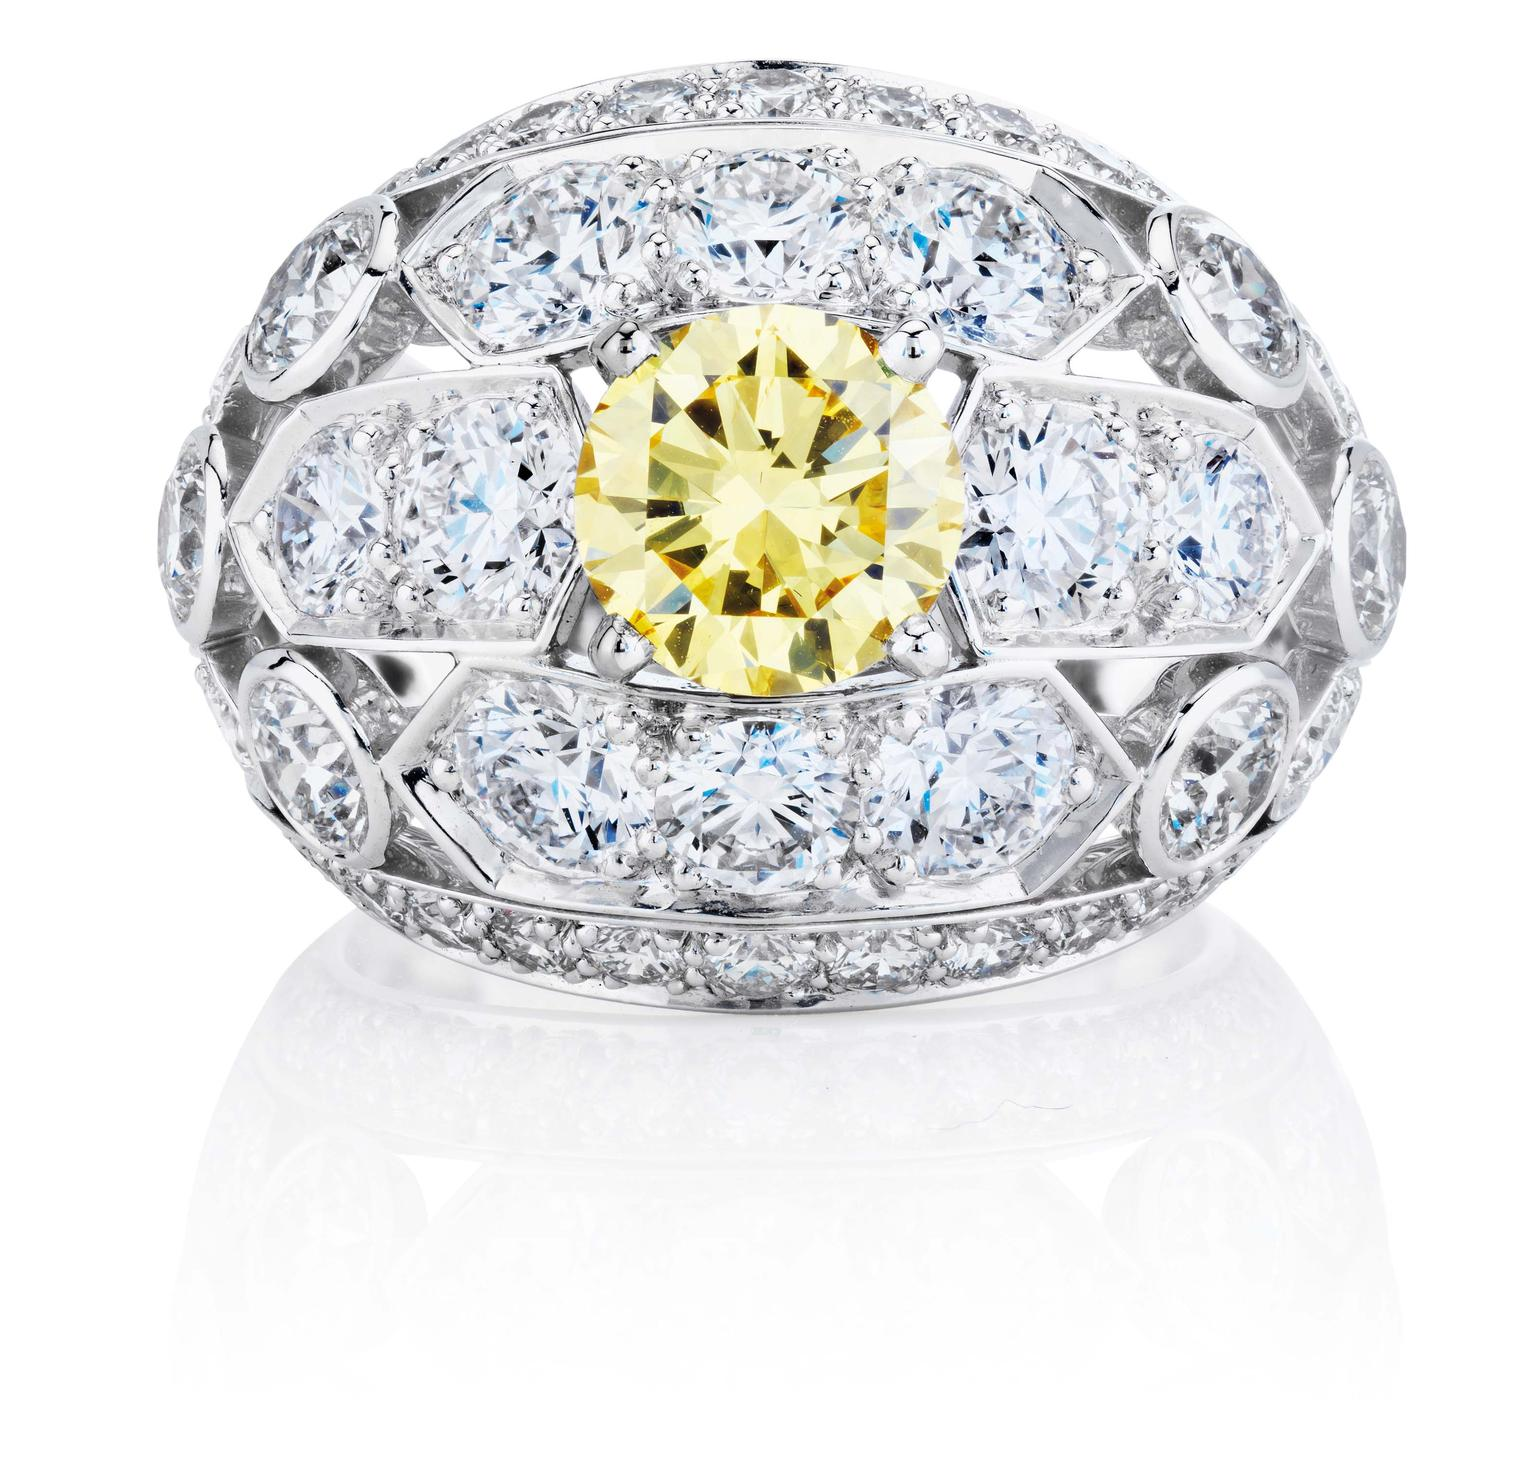 De Beers 1888 Creative Solitaires Phenomena Frost Flower ring, set with a central yellow diamond.